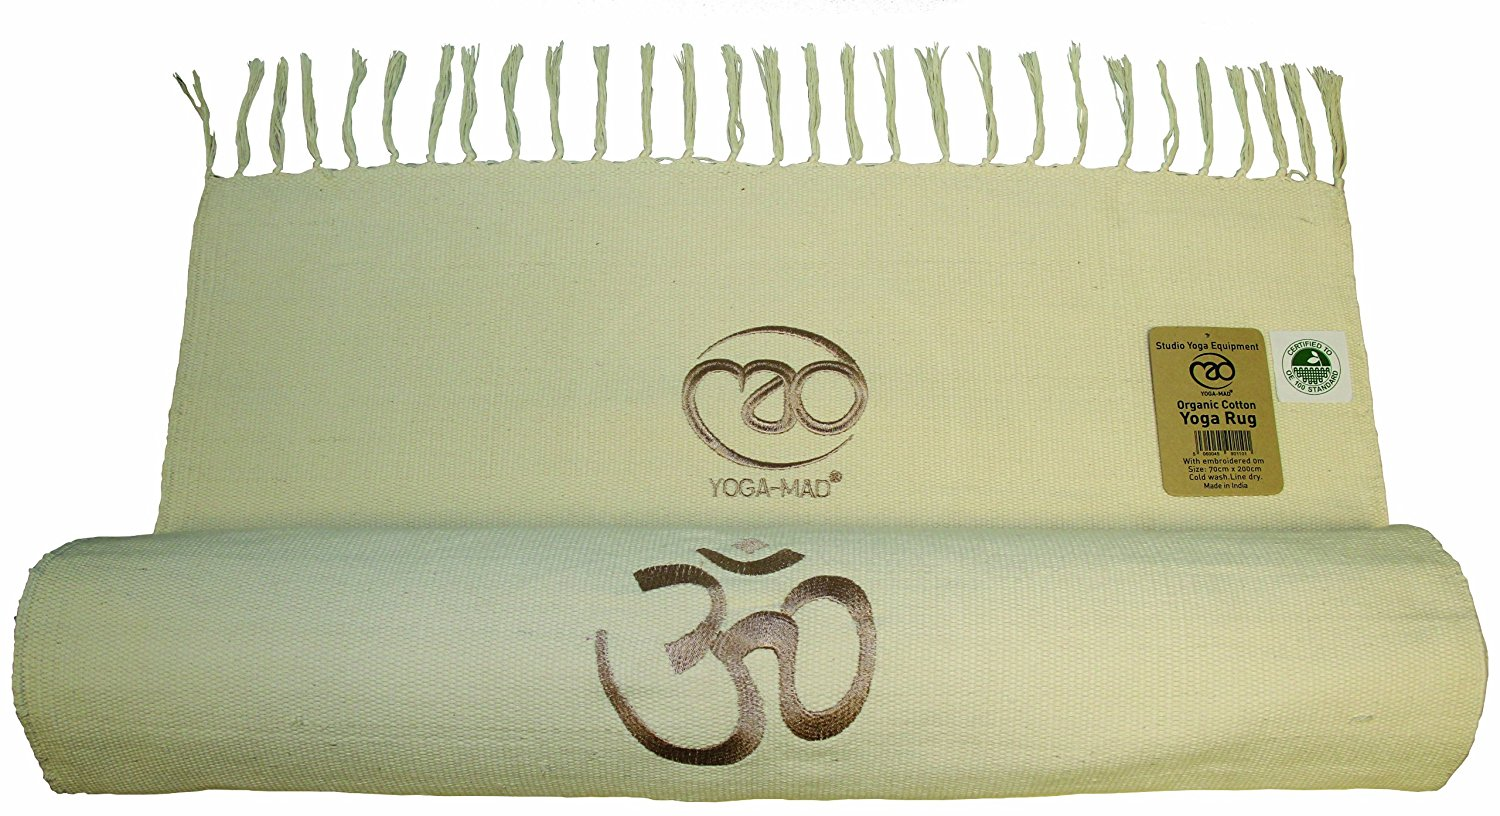 Yoga-Mad Organic Cotton Yoga Rug Natural